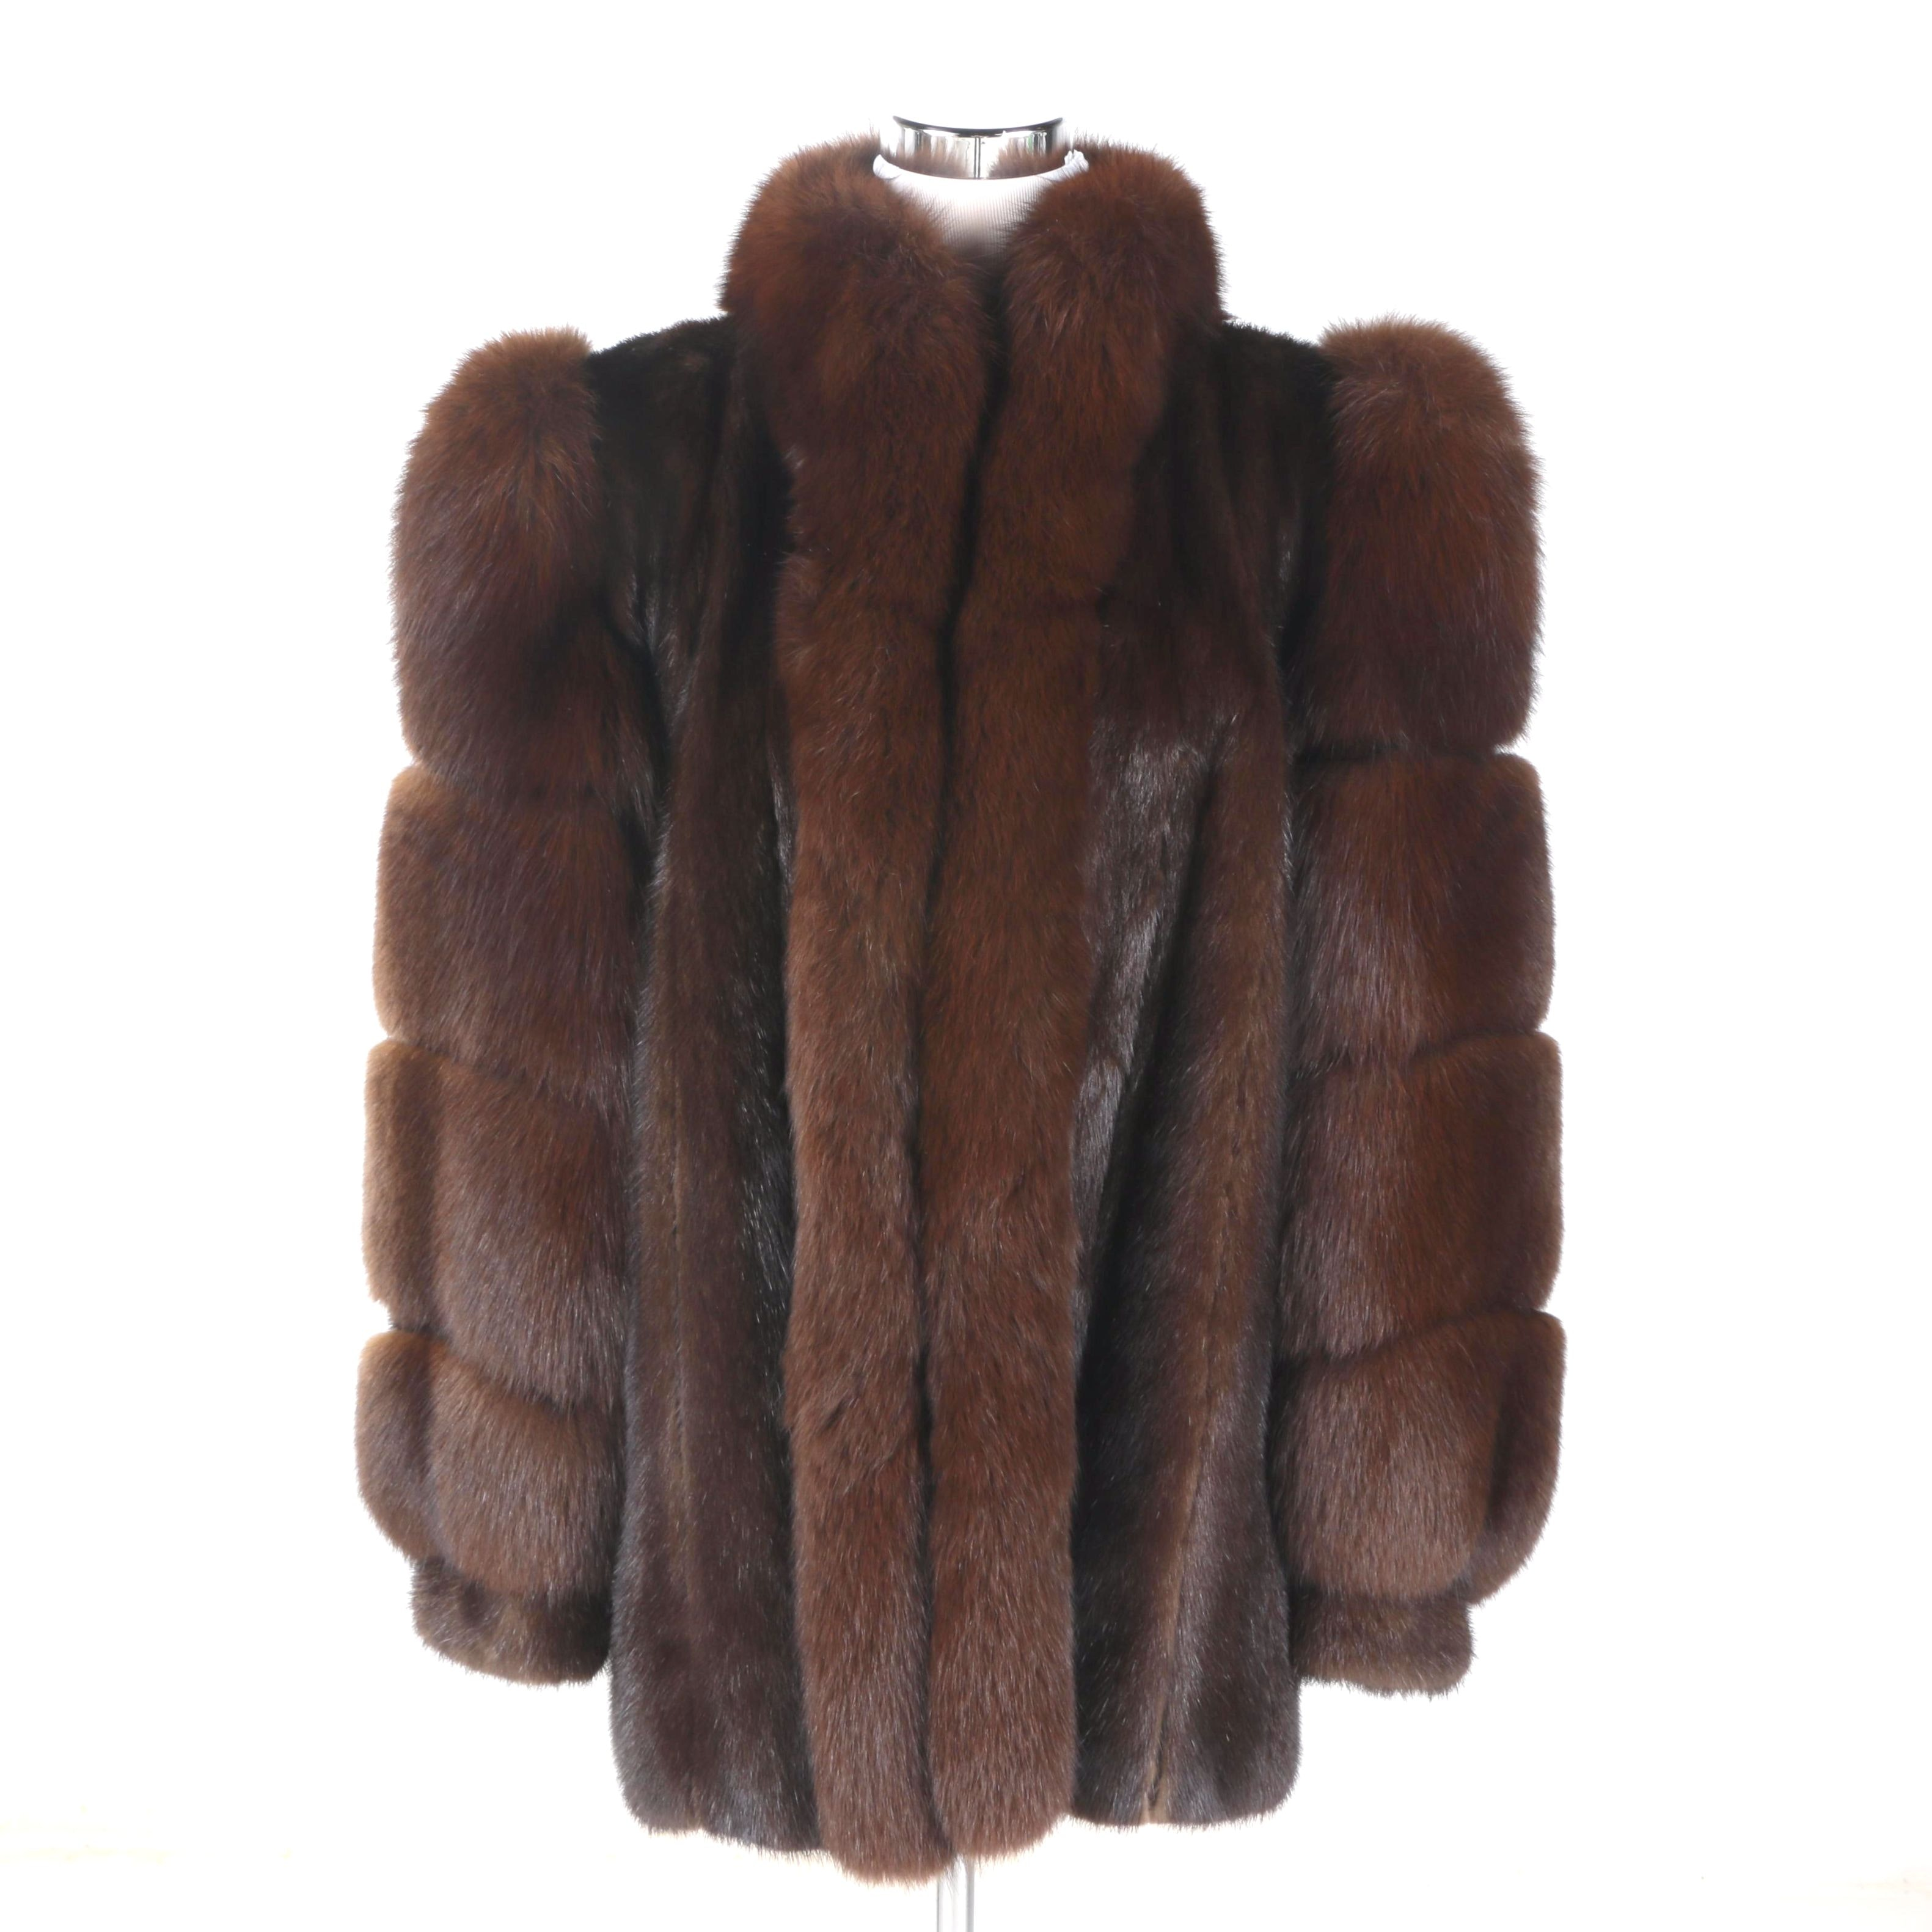 S. Garber Furs Mink and Fox Fur Coat